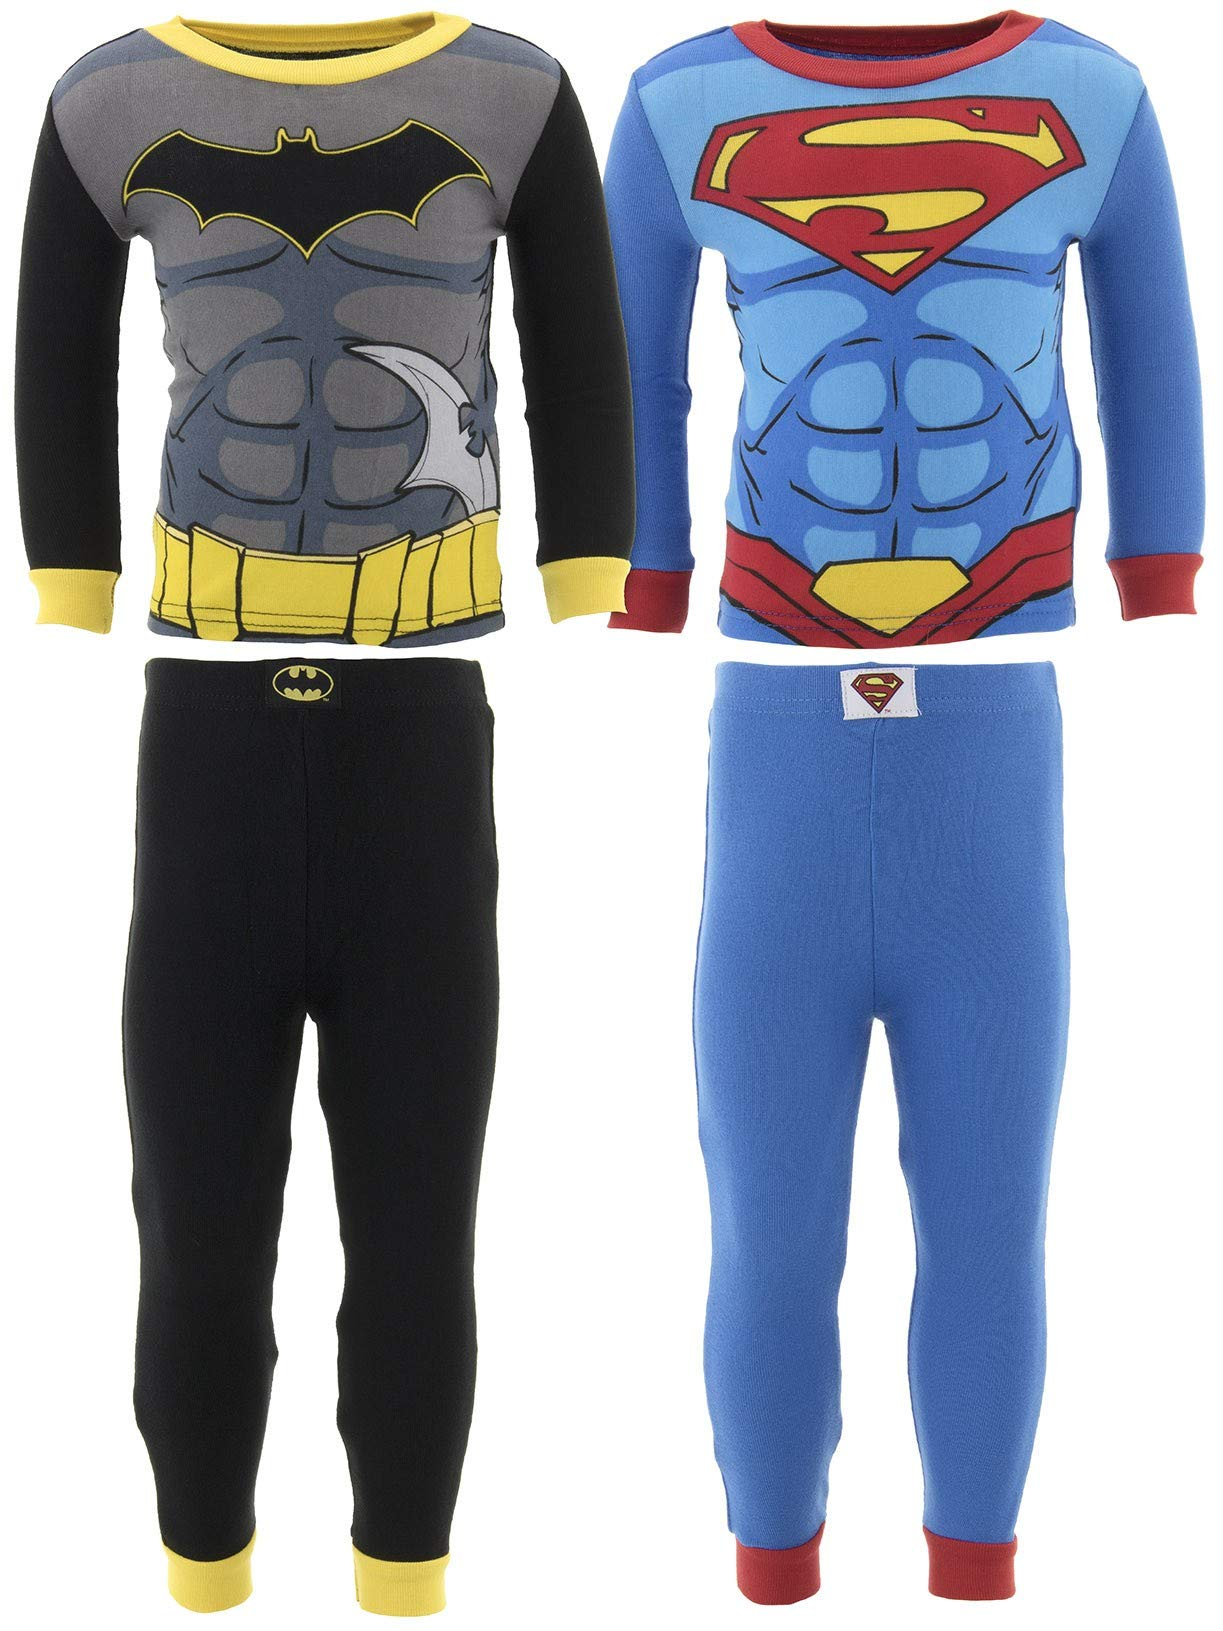 DC Comics Little Boys' Batman Superman Cotton 2-Pack Pajamas 4T